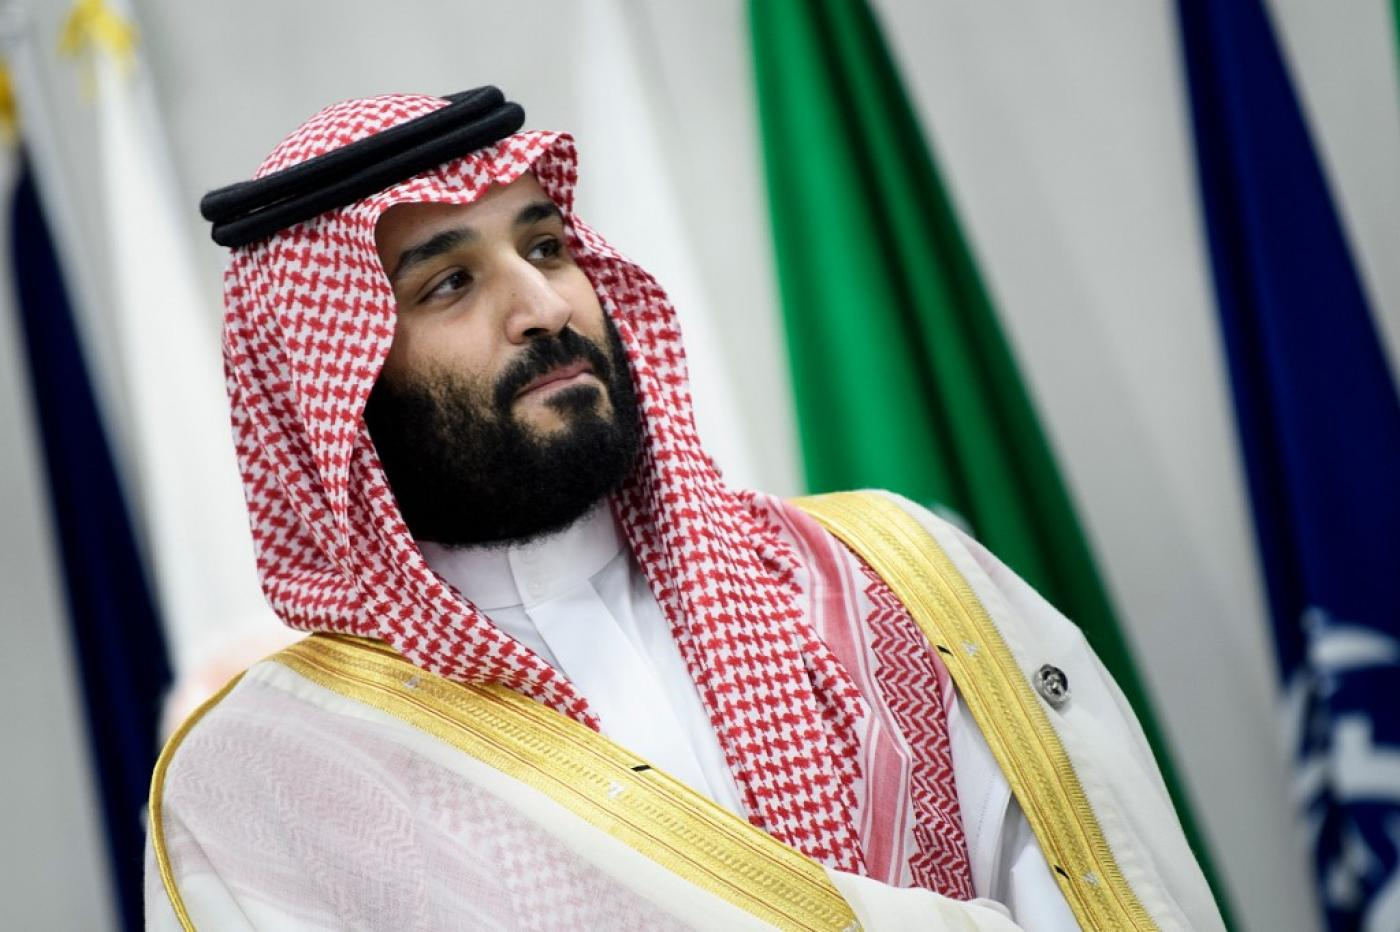 Jabri said that his deep knowledge of MBS and his activities has rendered him as a target for the crown prince.